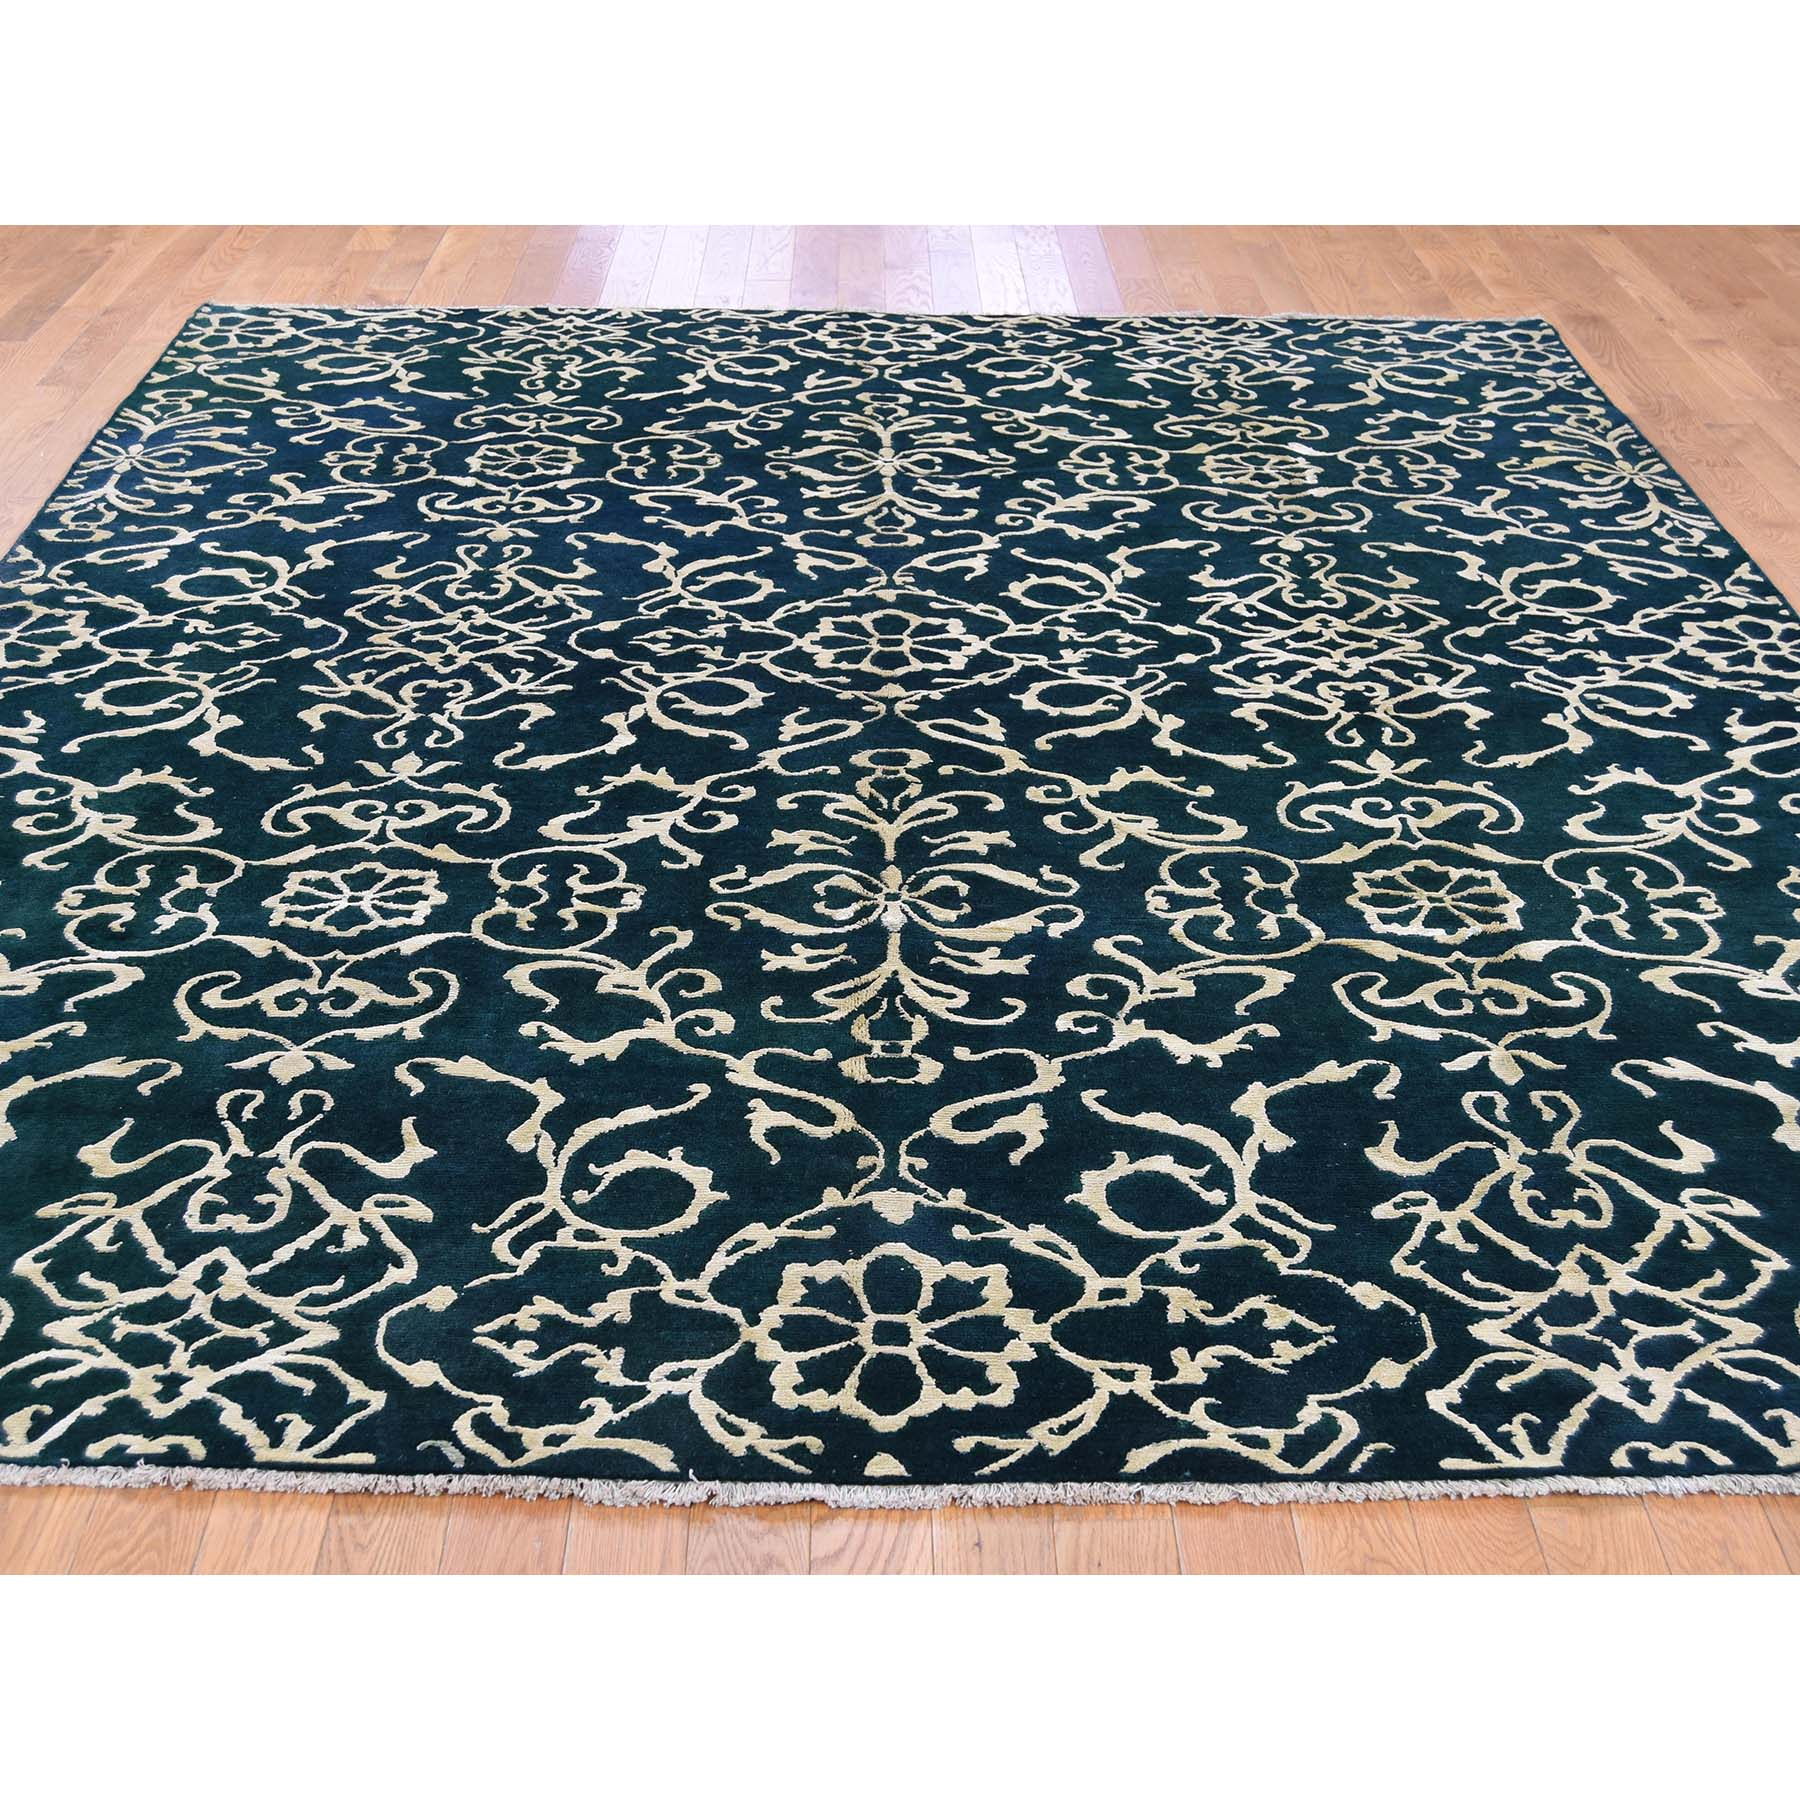 7-7--x9-4-- Wool and Silk Modern Nepali Hand Knotted Oriental Rug